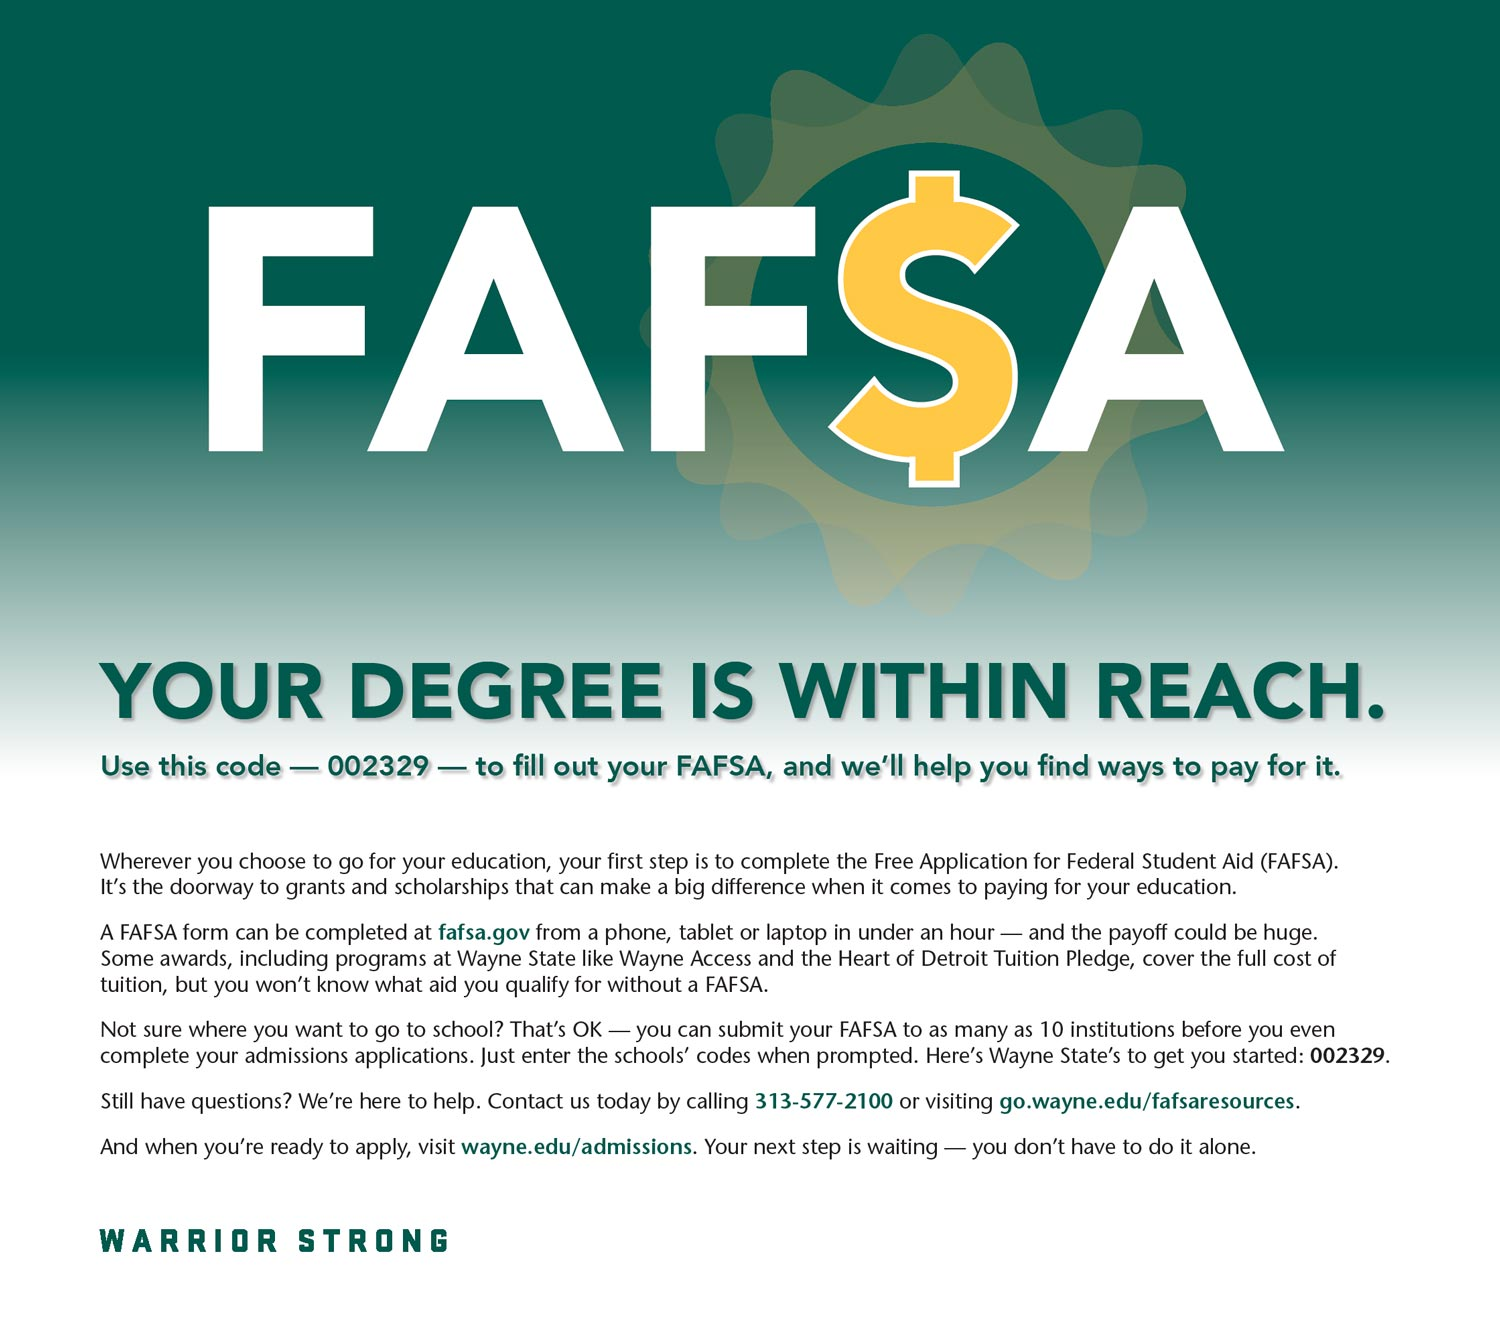 Free Application for Federal Student Aid (FAFSA) Advertisement